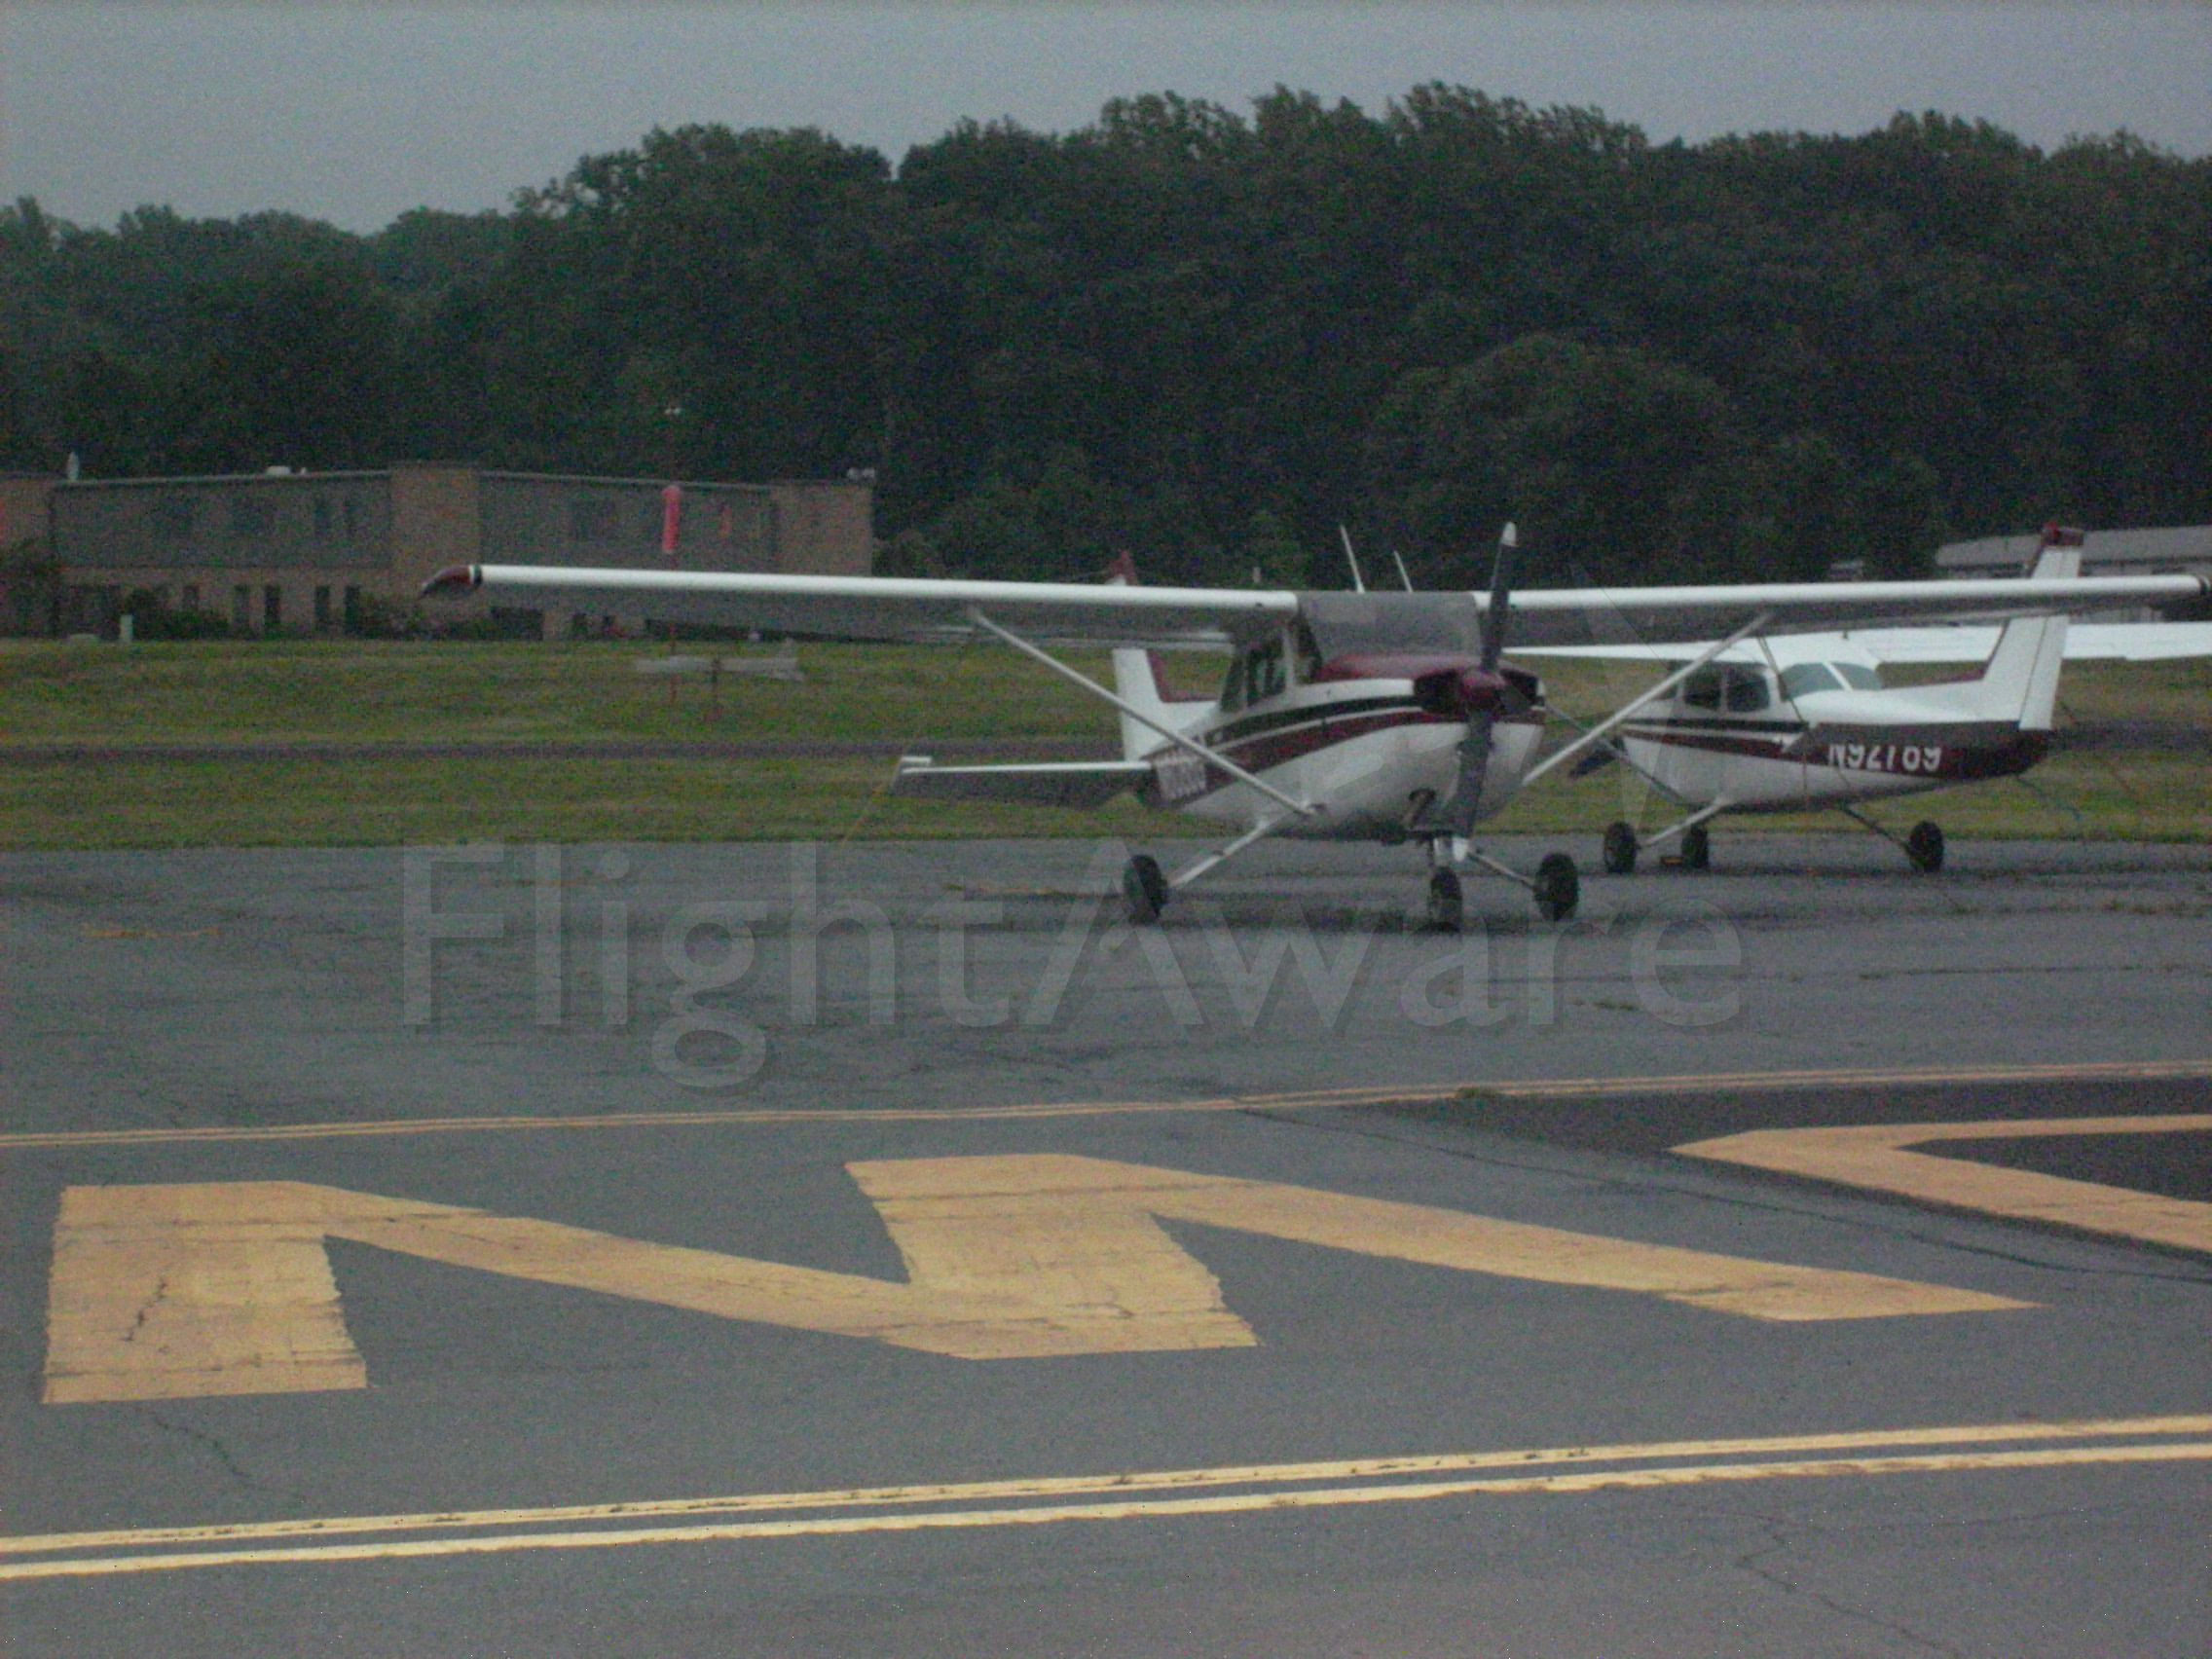 Cessna Skyhawk — - A blurry picture of this Cessna 172 parked on the ramp at the Doylestown Airport in Prnnsylvania.